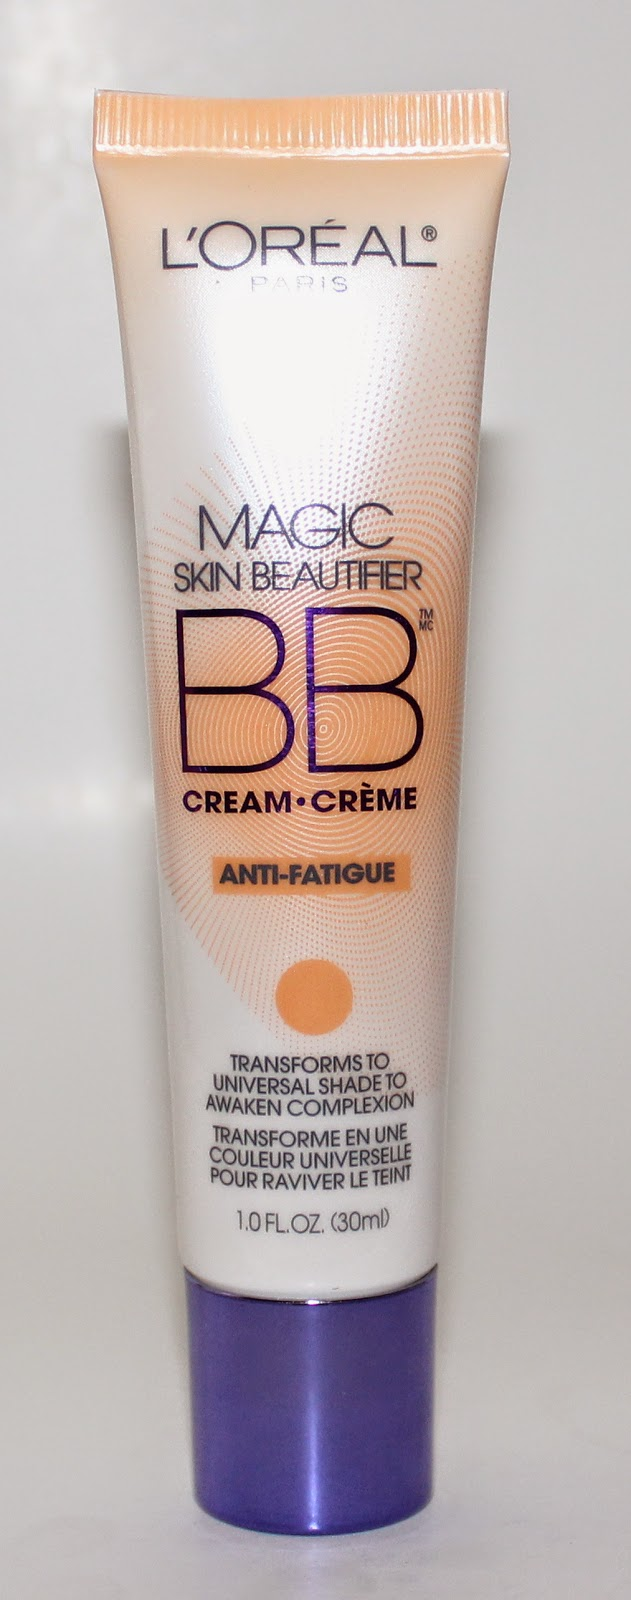 L'Oréal Magic Skin Beautifier BB Cream Anti-Fatigue